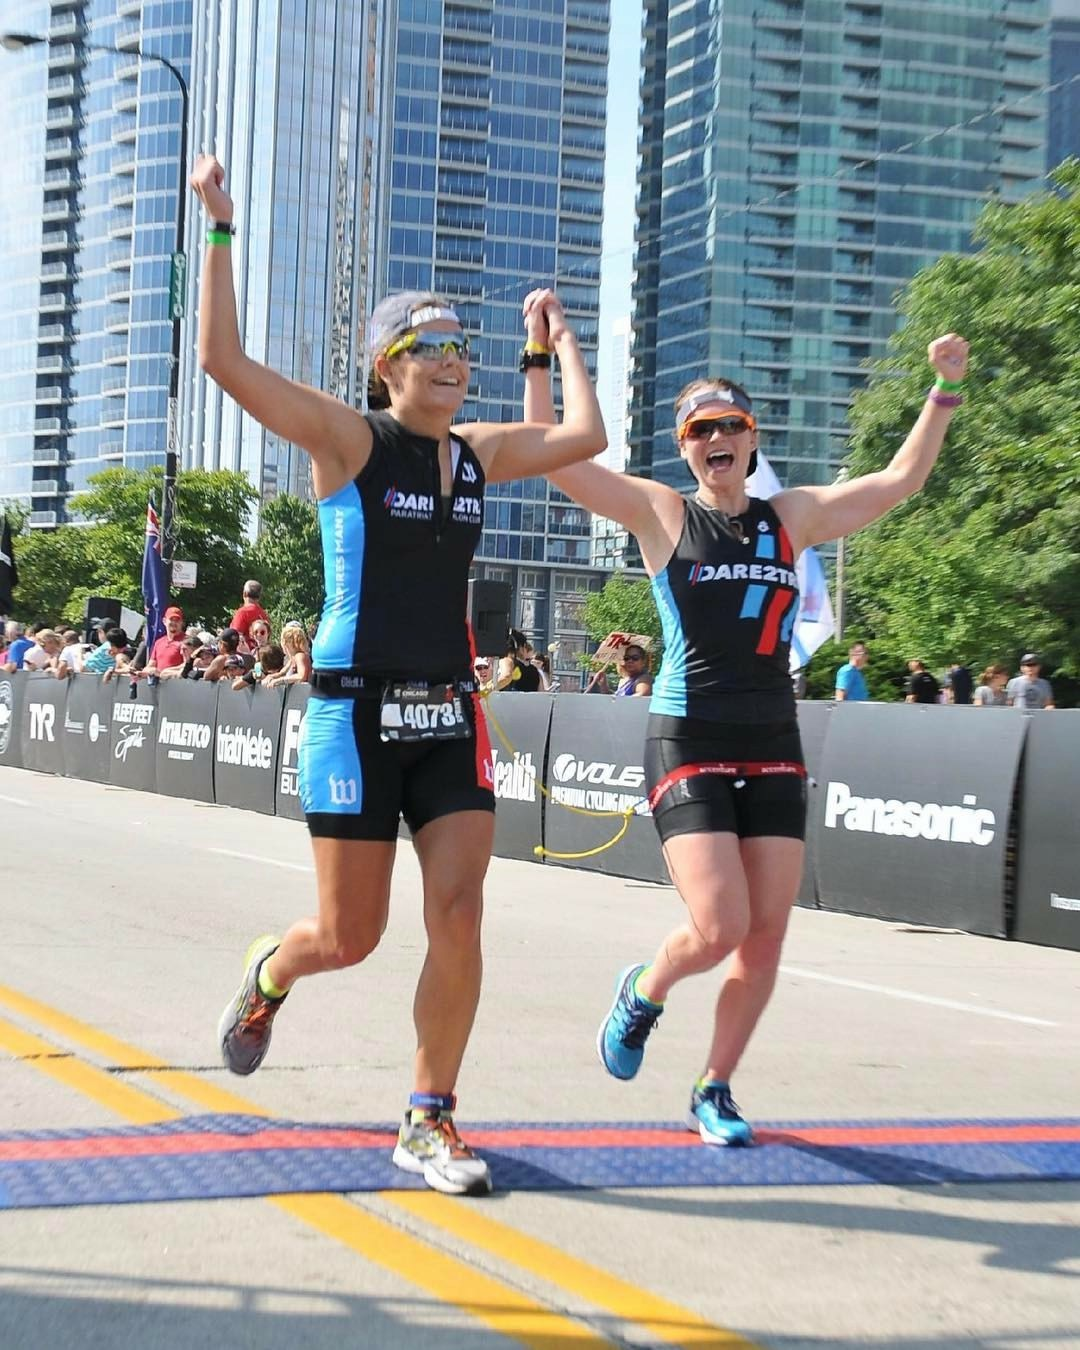 Caroline, at right, crossing the finish line of a triathlon as a guide for visually impaired athletes.